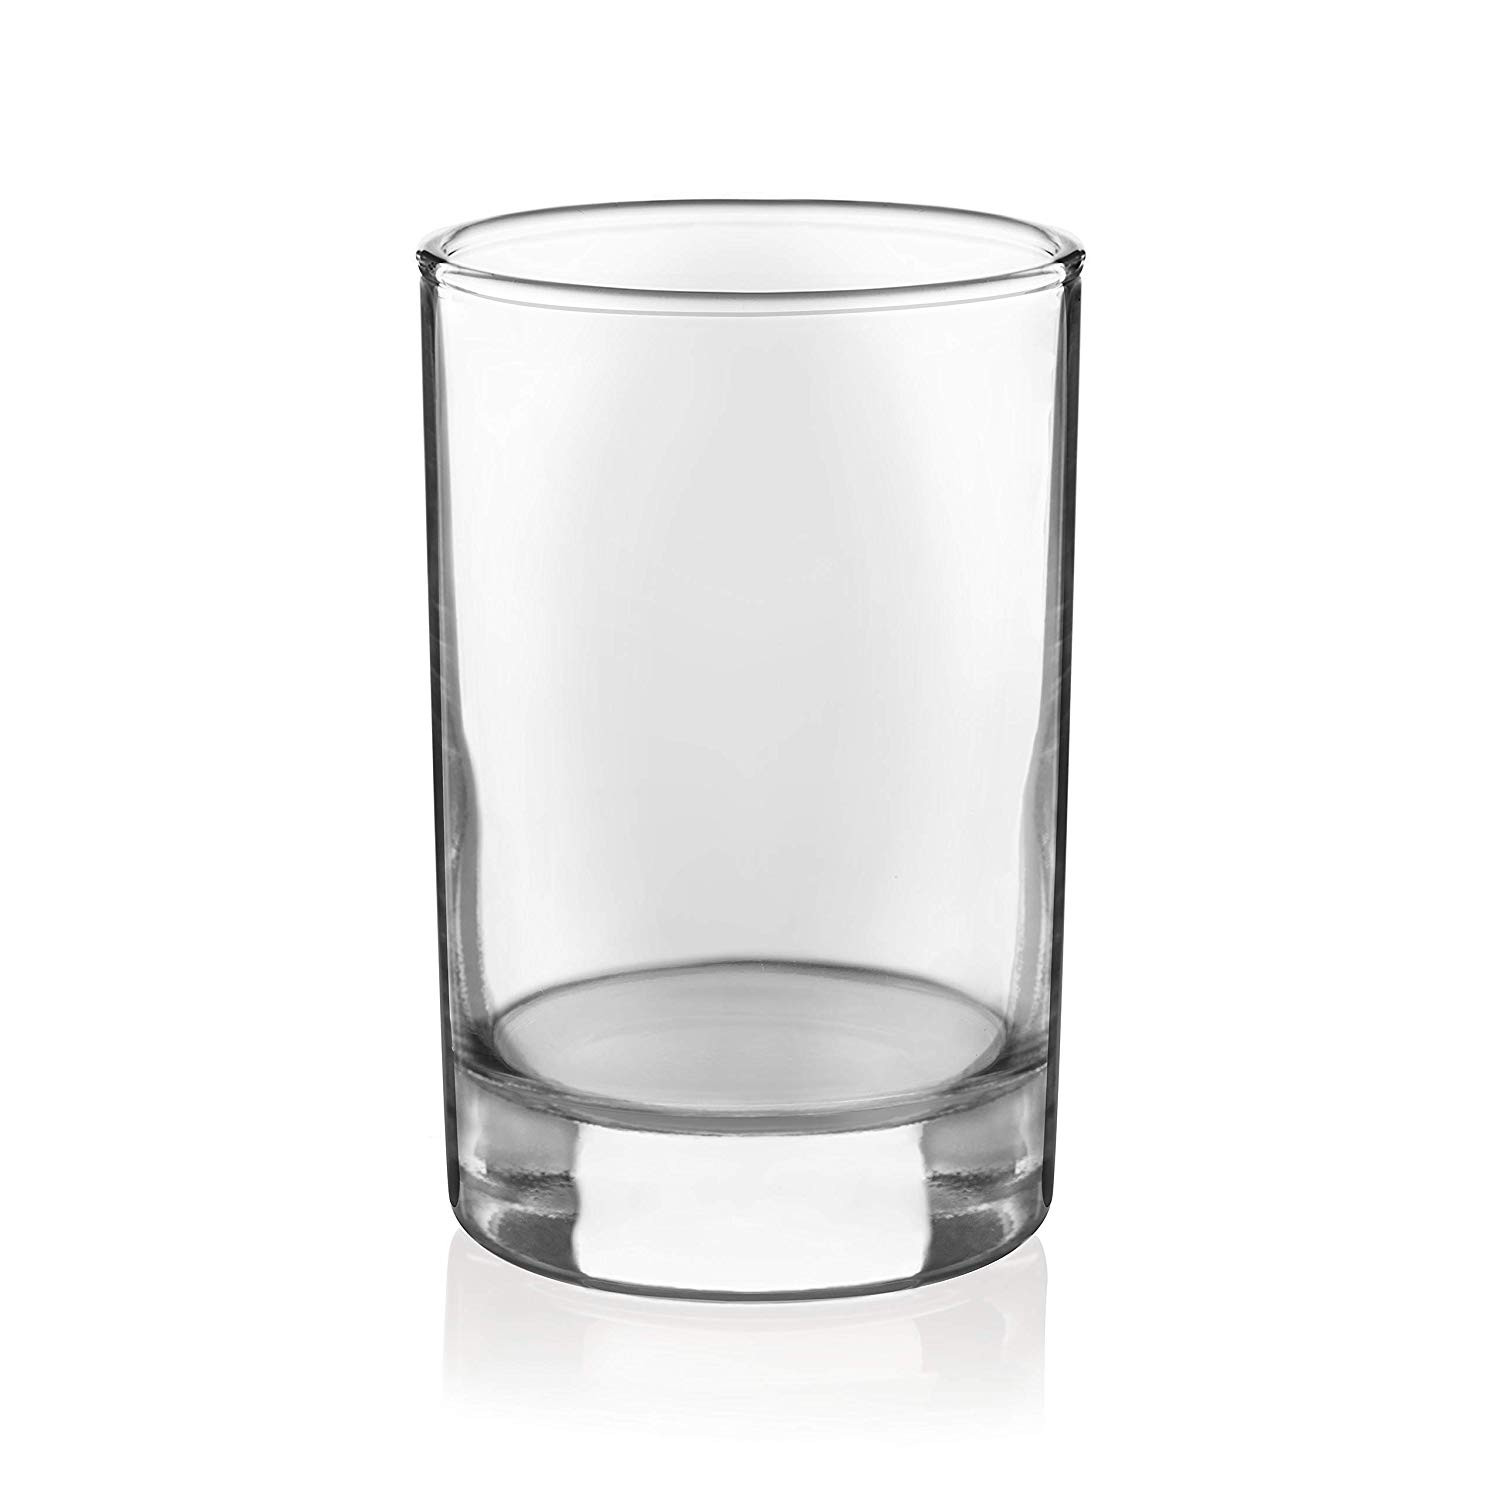 glass cylinder vase 12 x 5 of amazon com libbey 5 5 ounce heavy base juice glass set of 4 intended for amazon com libbey 5 5 ounce heavy base juice glass set of 4 mixed drinkware sets